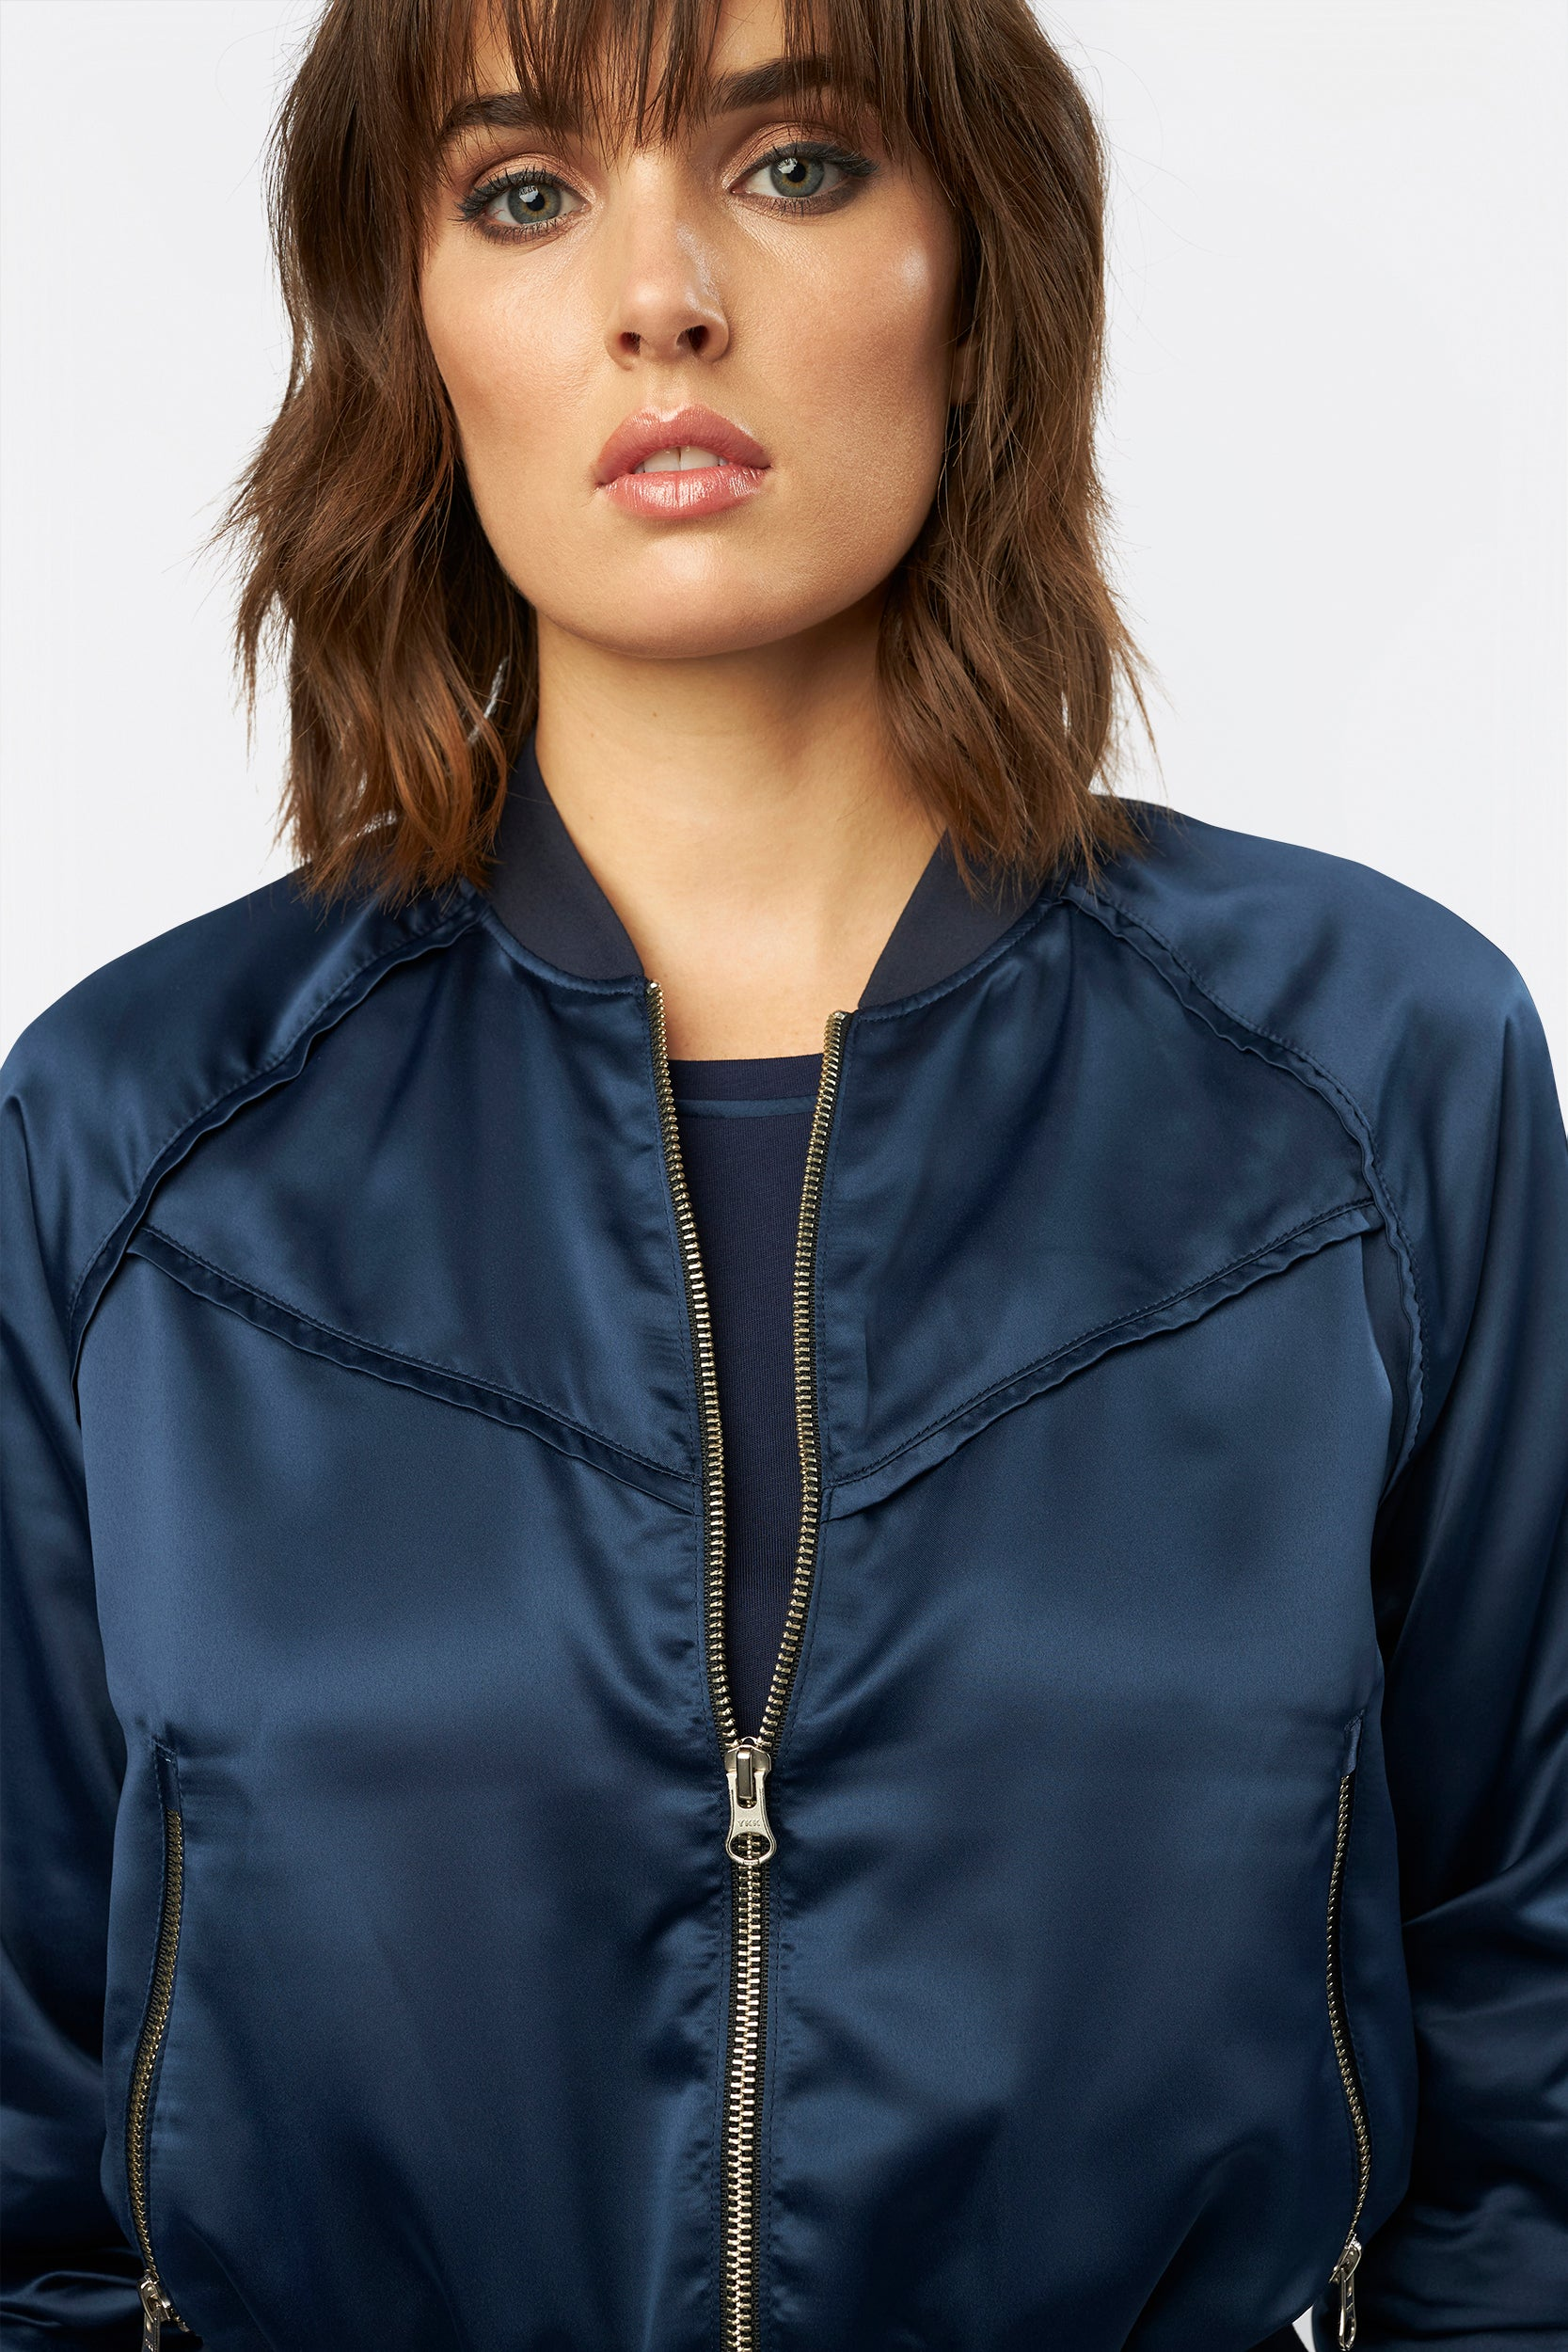 Beauty Bomber Jacket